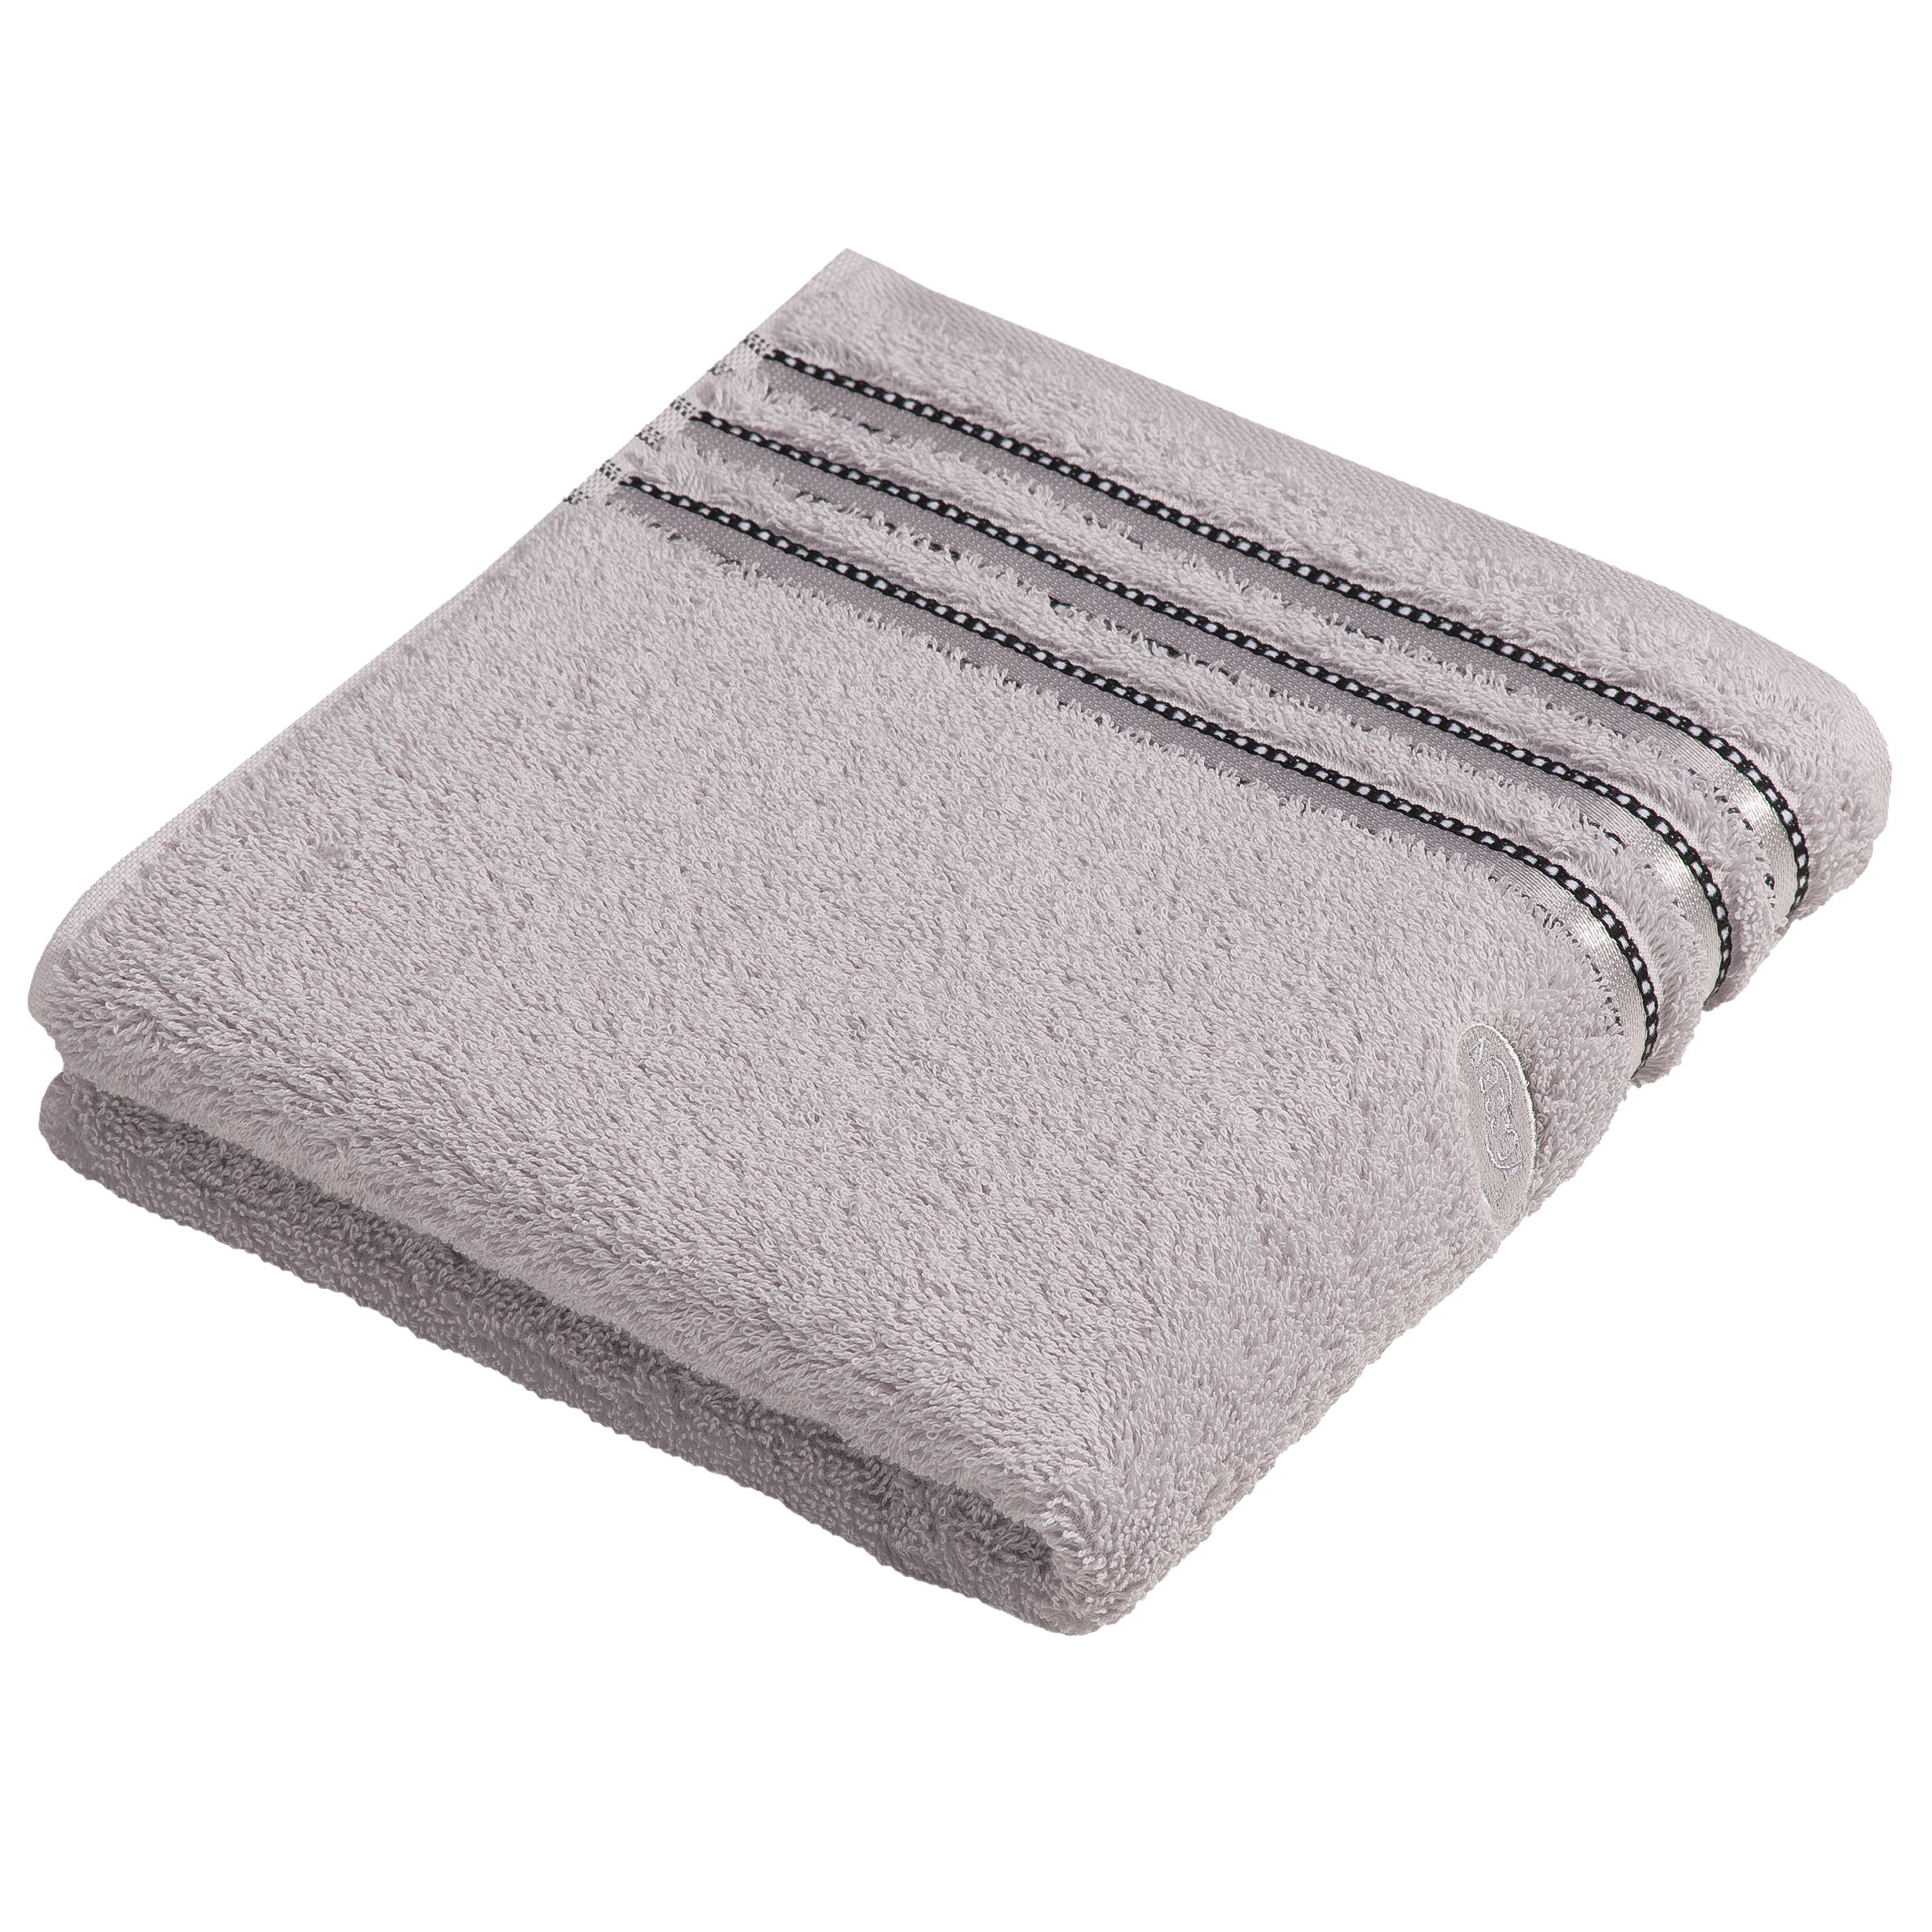 Cult de lux light grey towel range